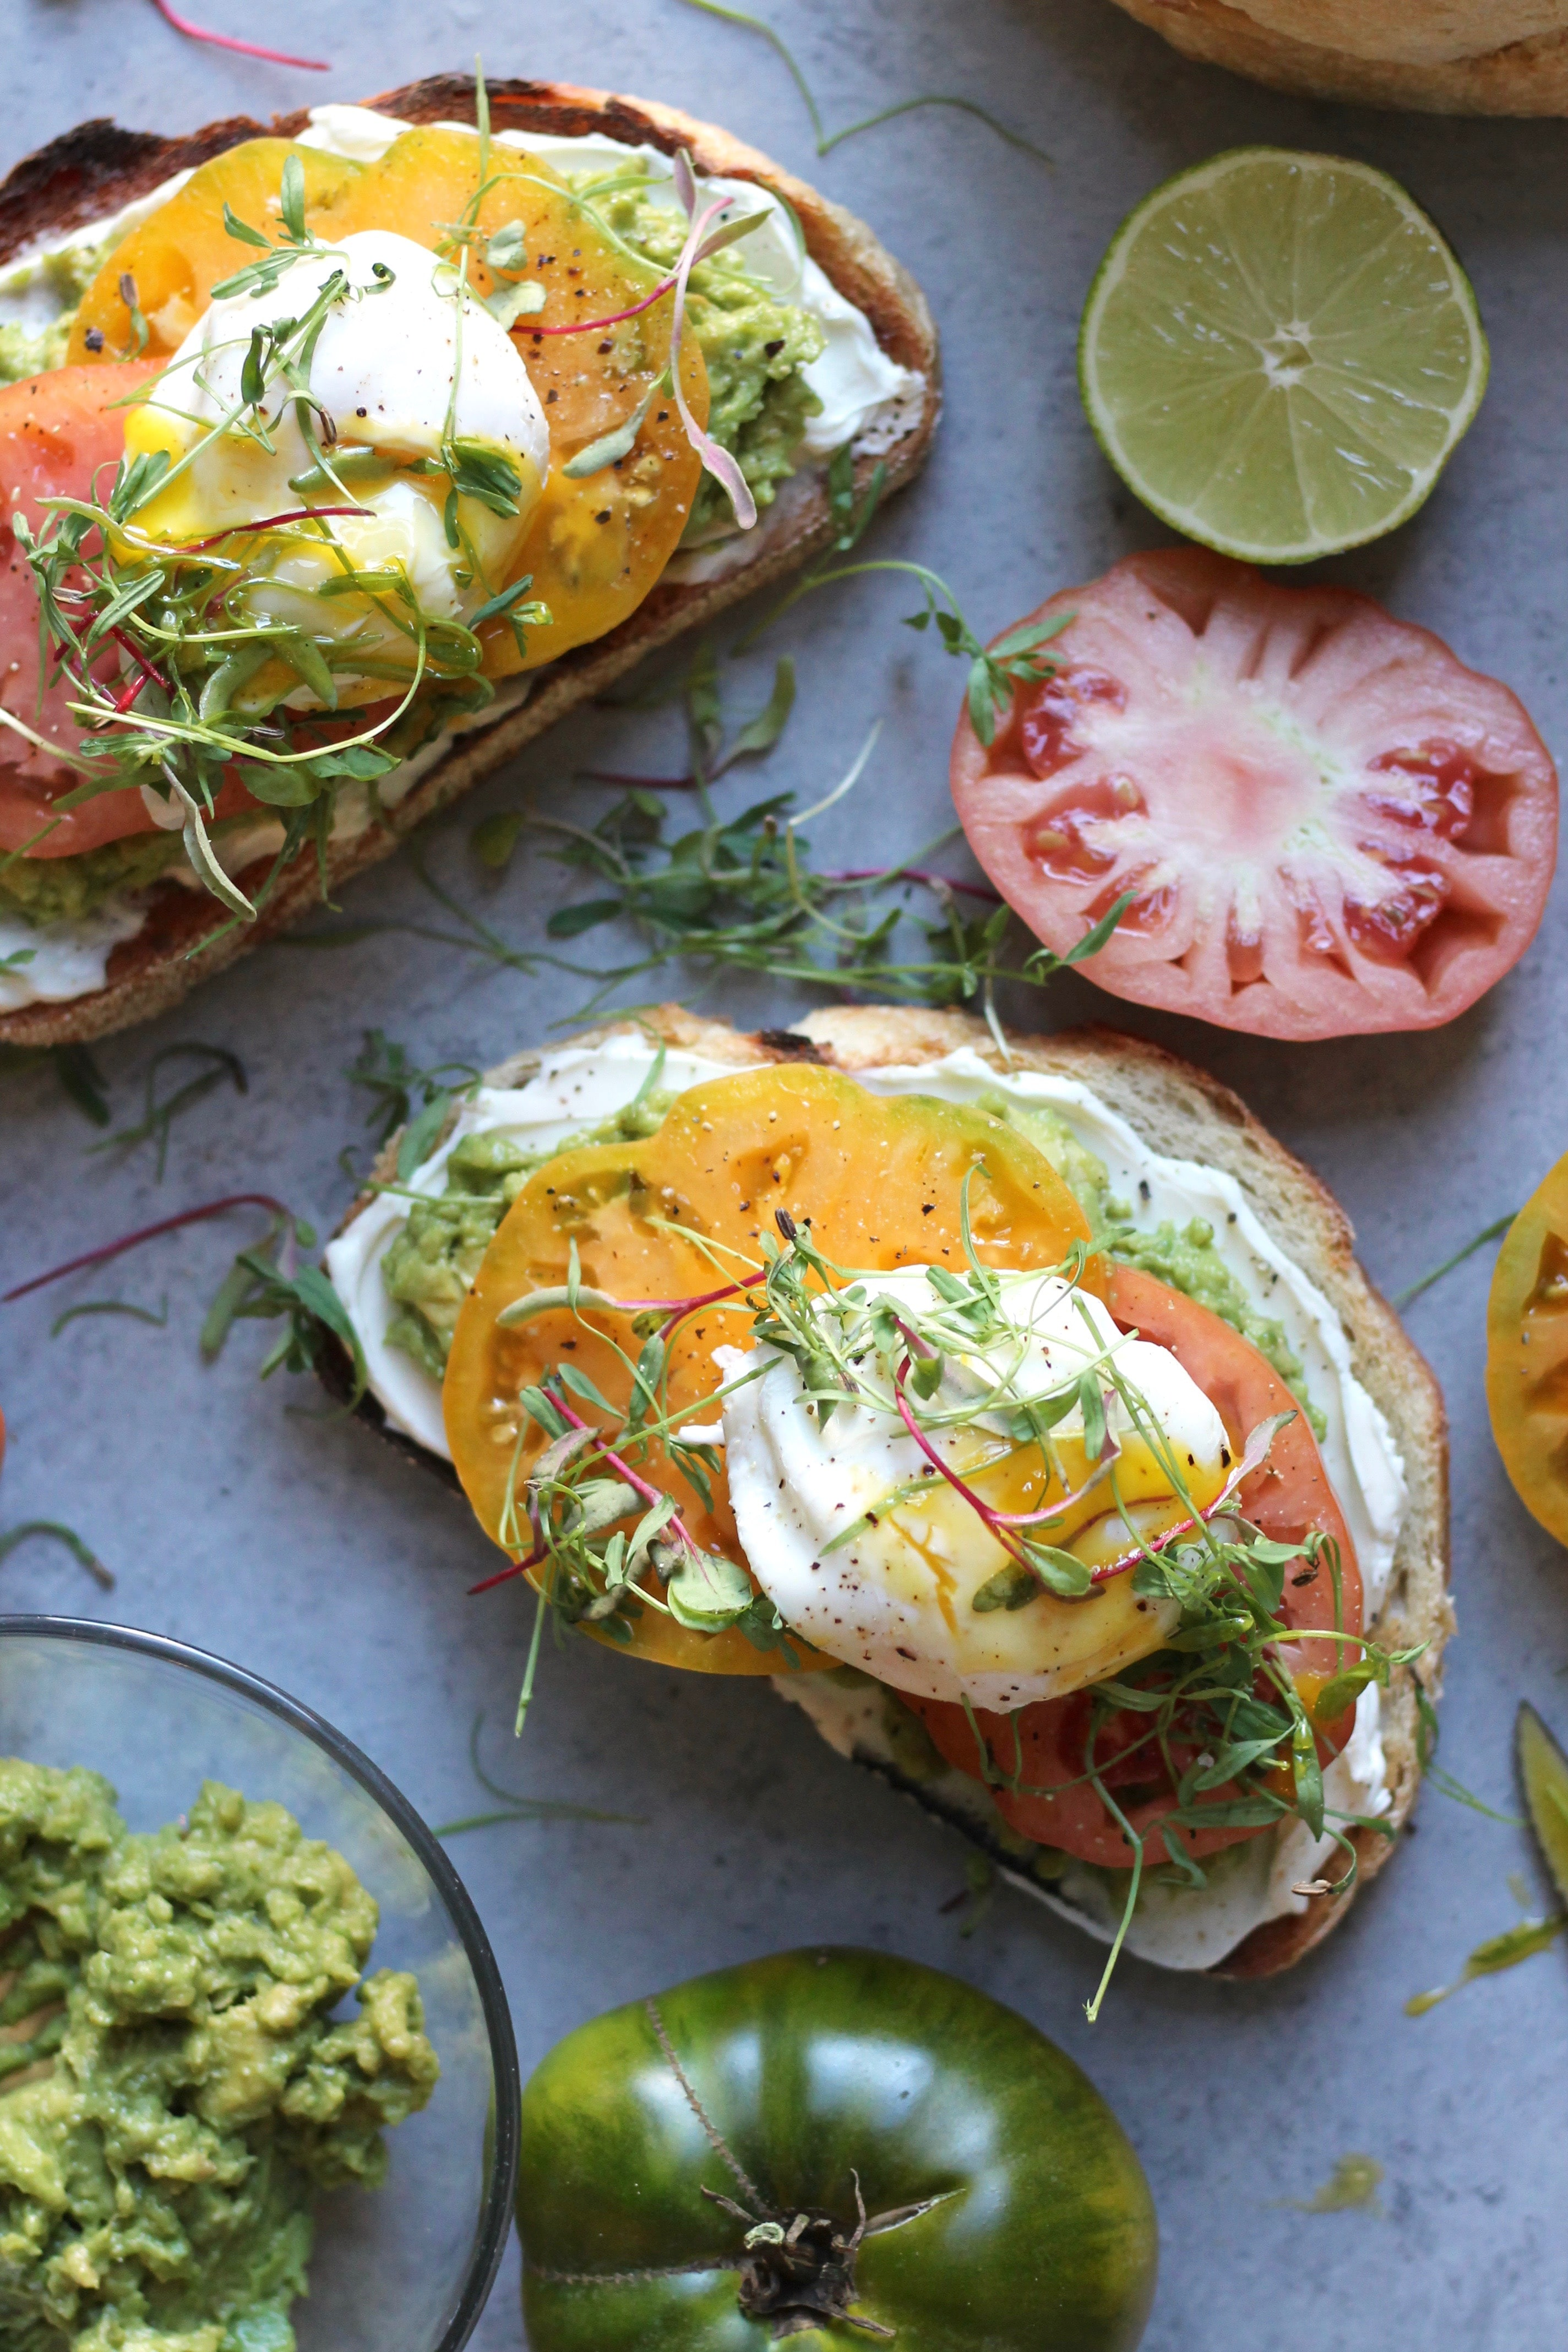 Cream Cheese Avocado Toast with Heirloom Tomatoes and Poached Eggs